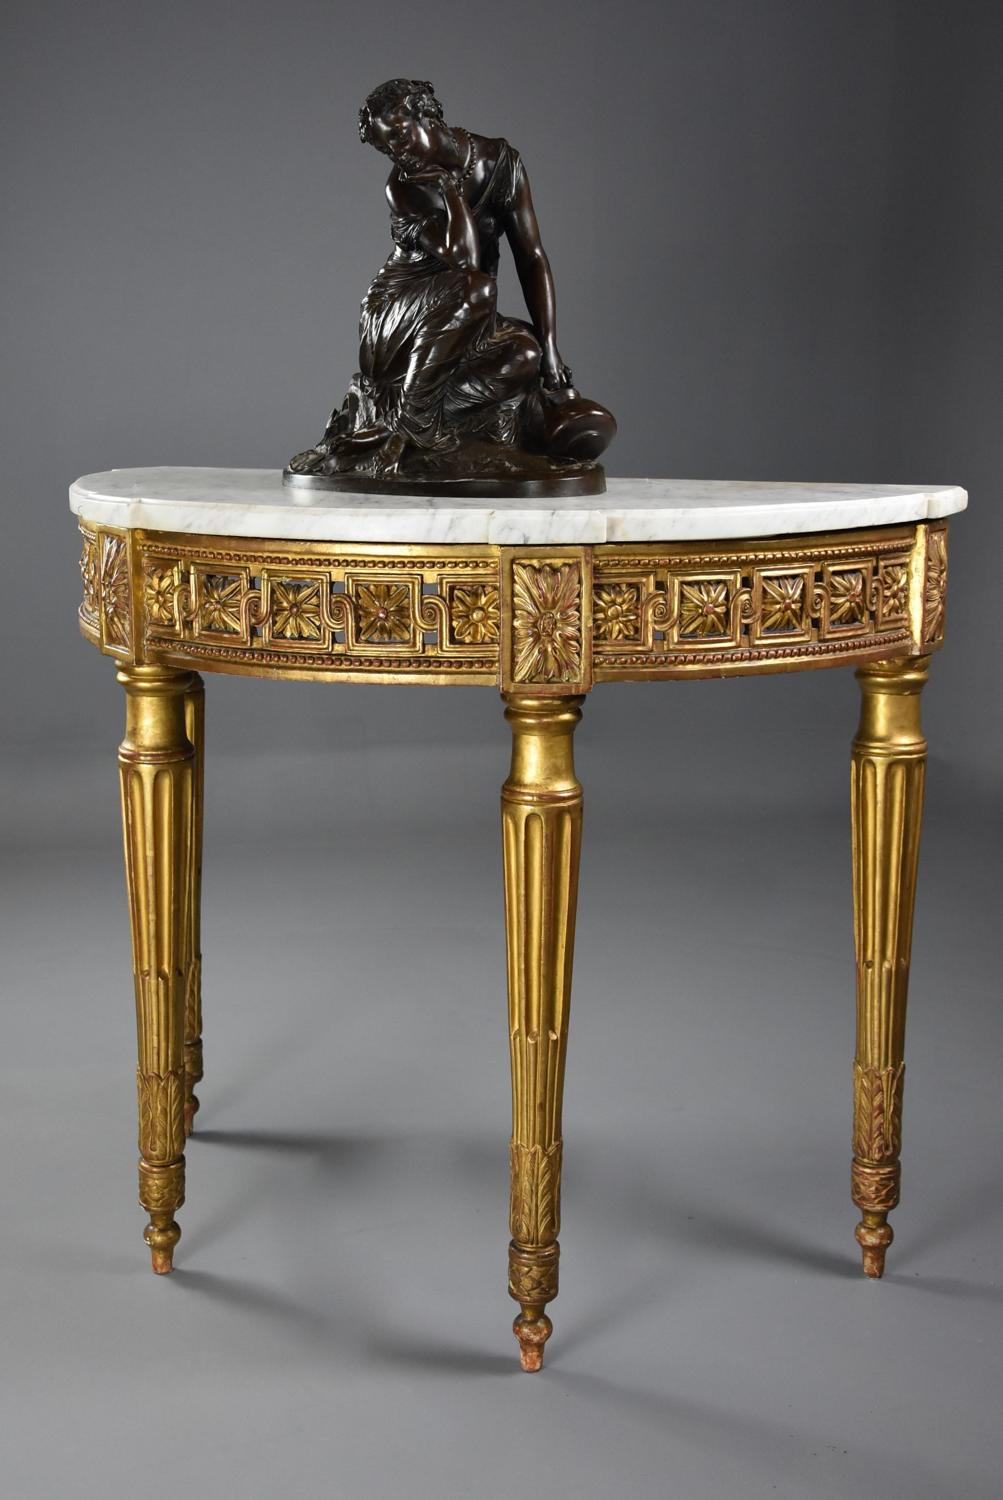 Highly decorative 19th century French demi-lune gilt console table